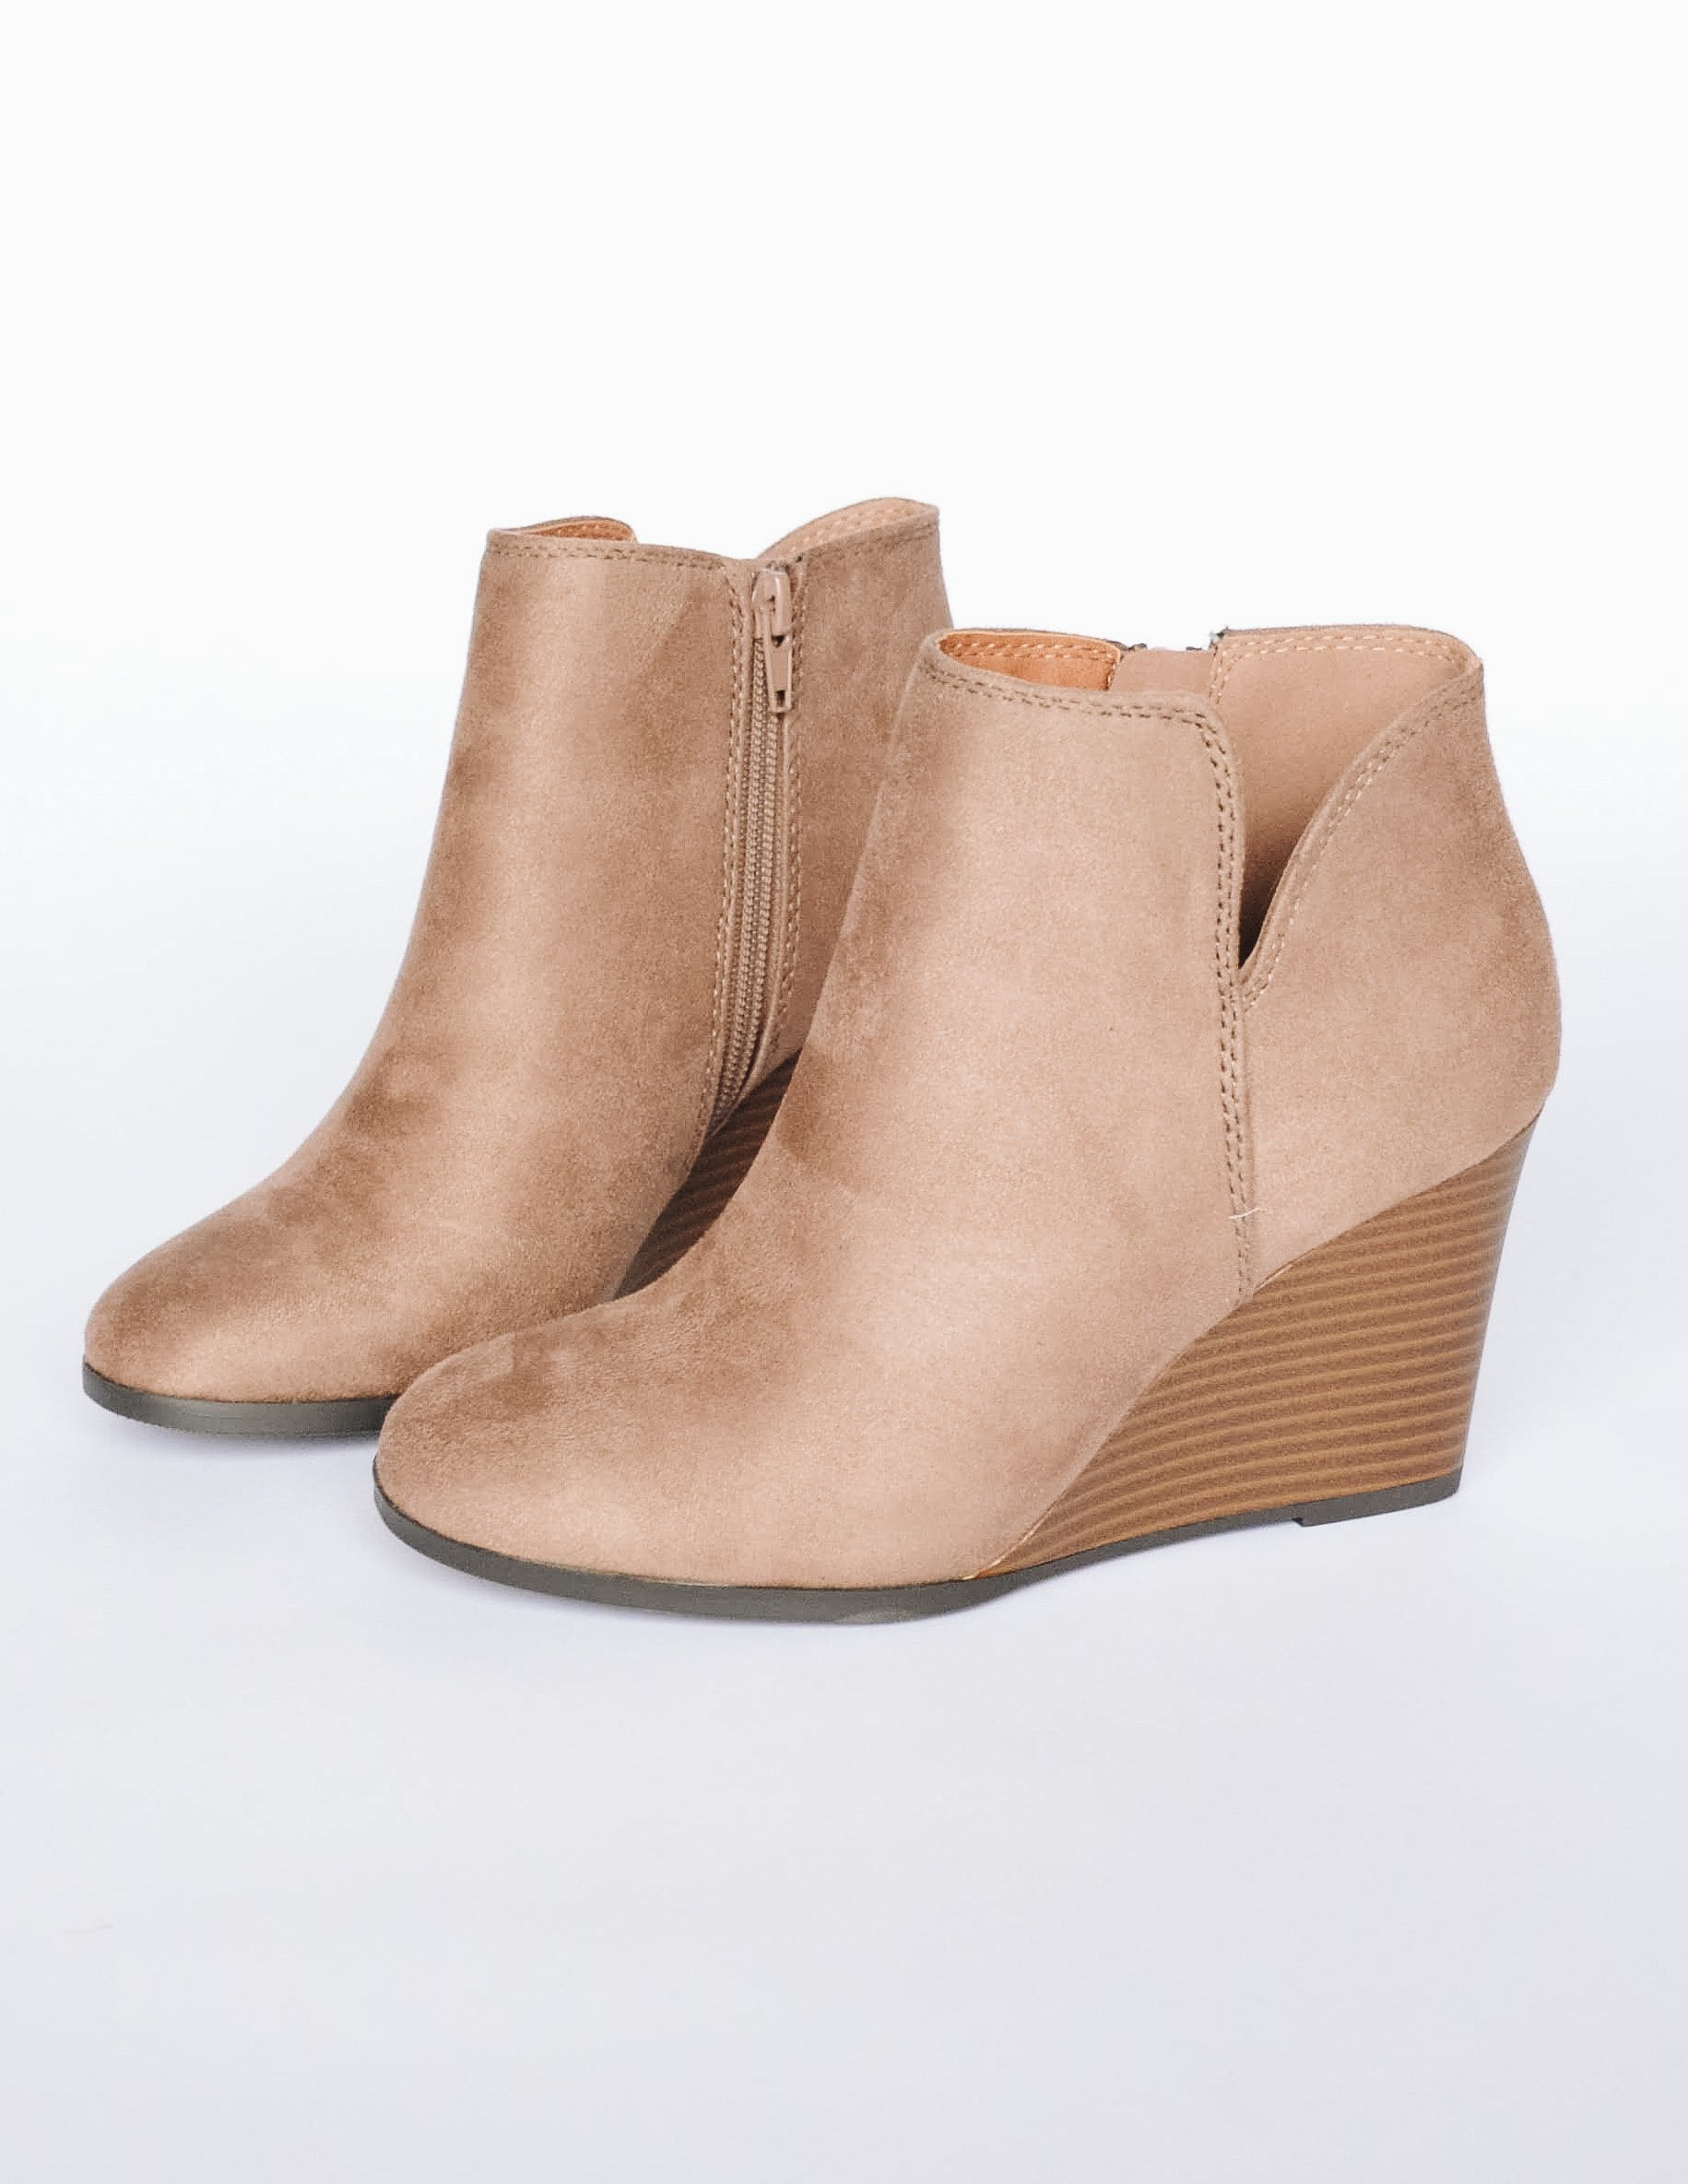 Taupe faux suede wedge heel with small v cut on the side